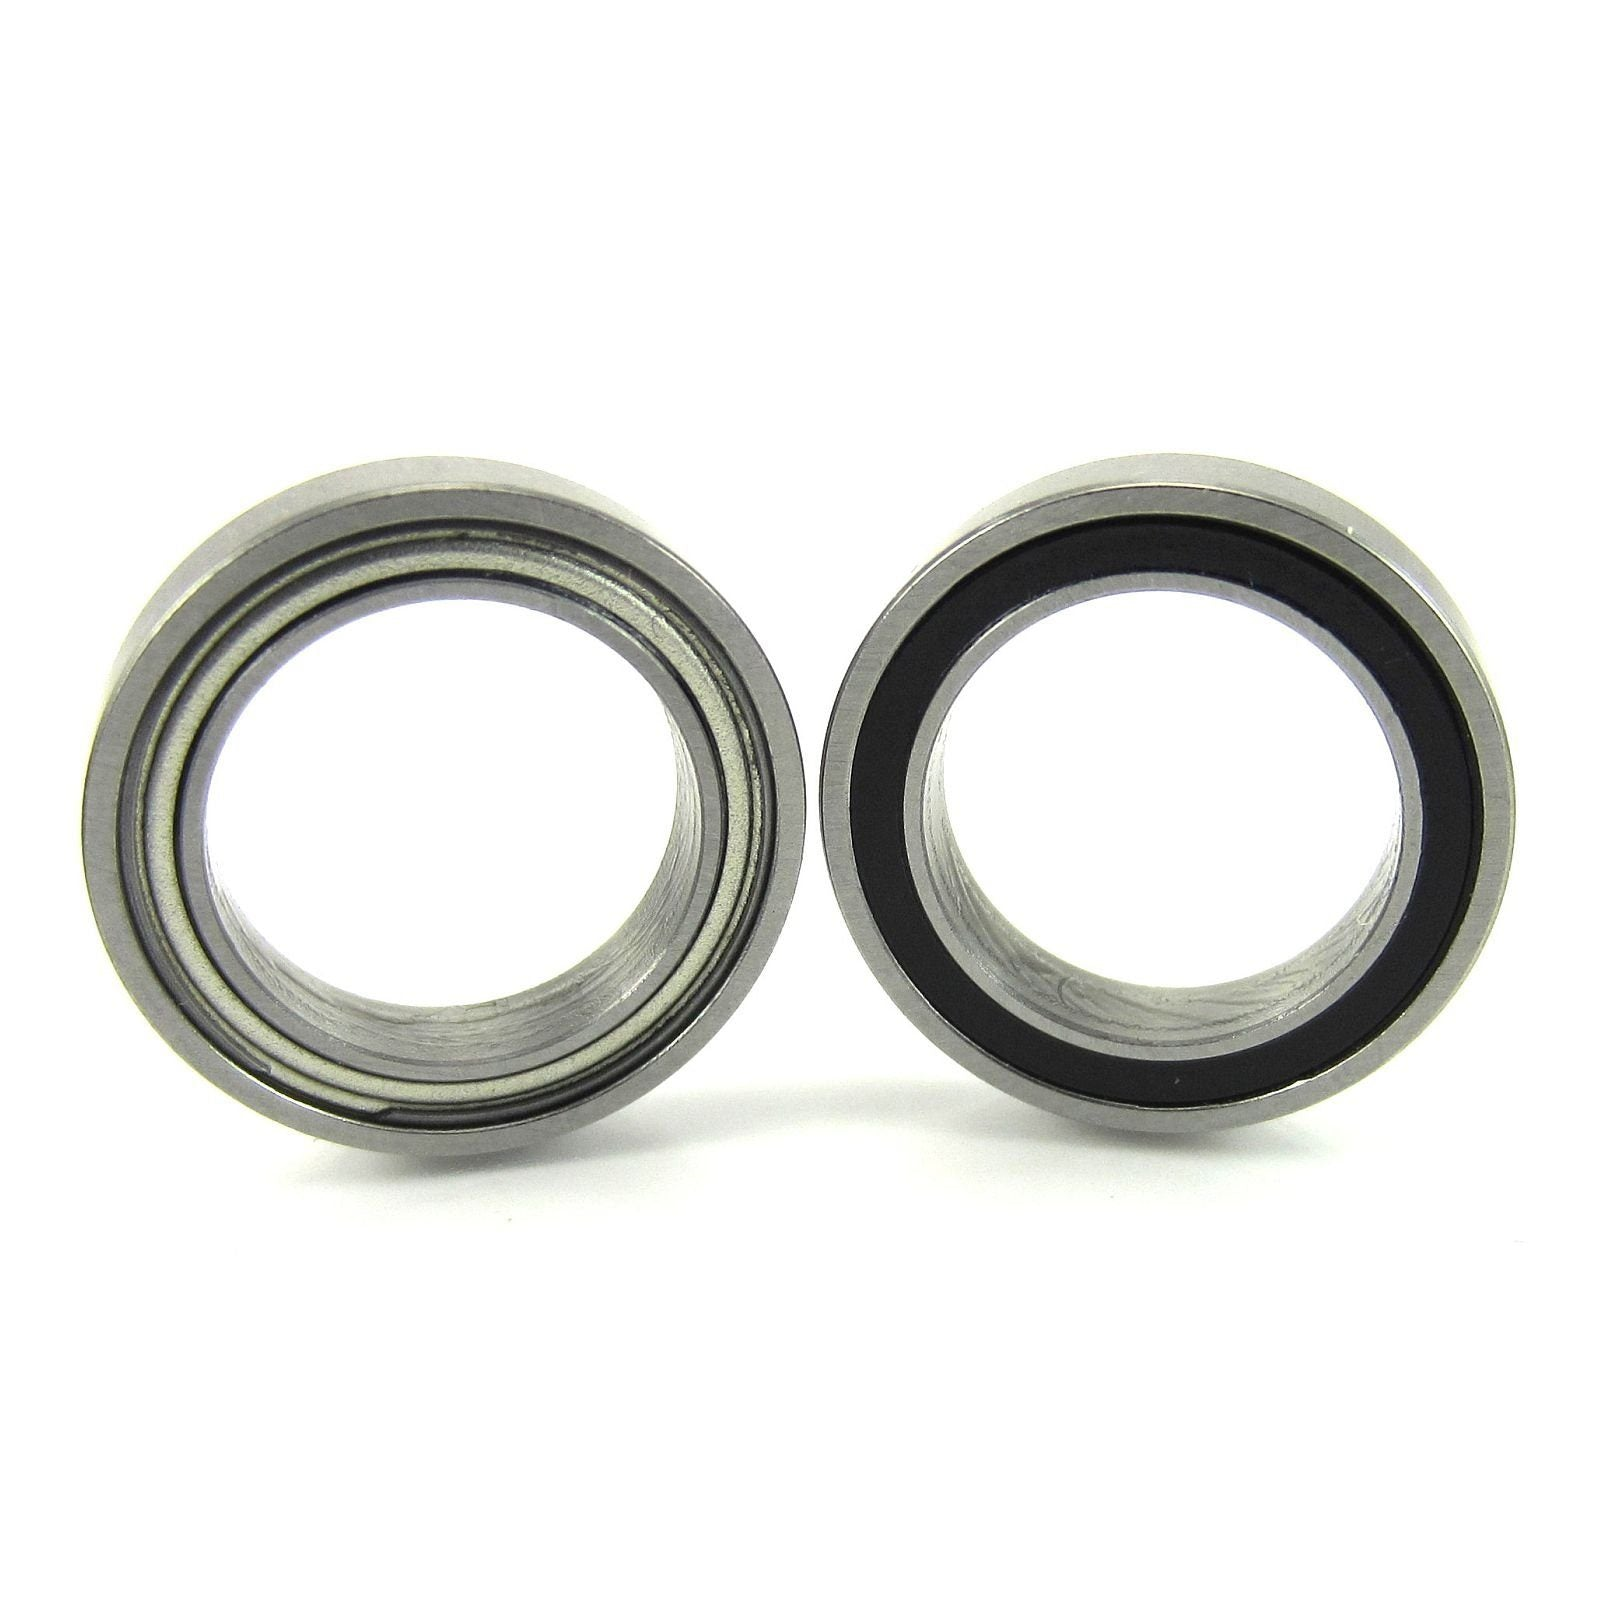 TRB RC 13x19x4mm Precision Ceramic Ball Bearings Hybrid Seals (2) - trb-rc-bearings